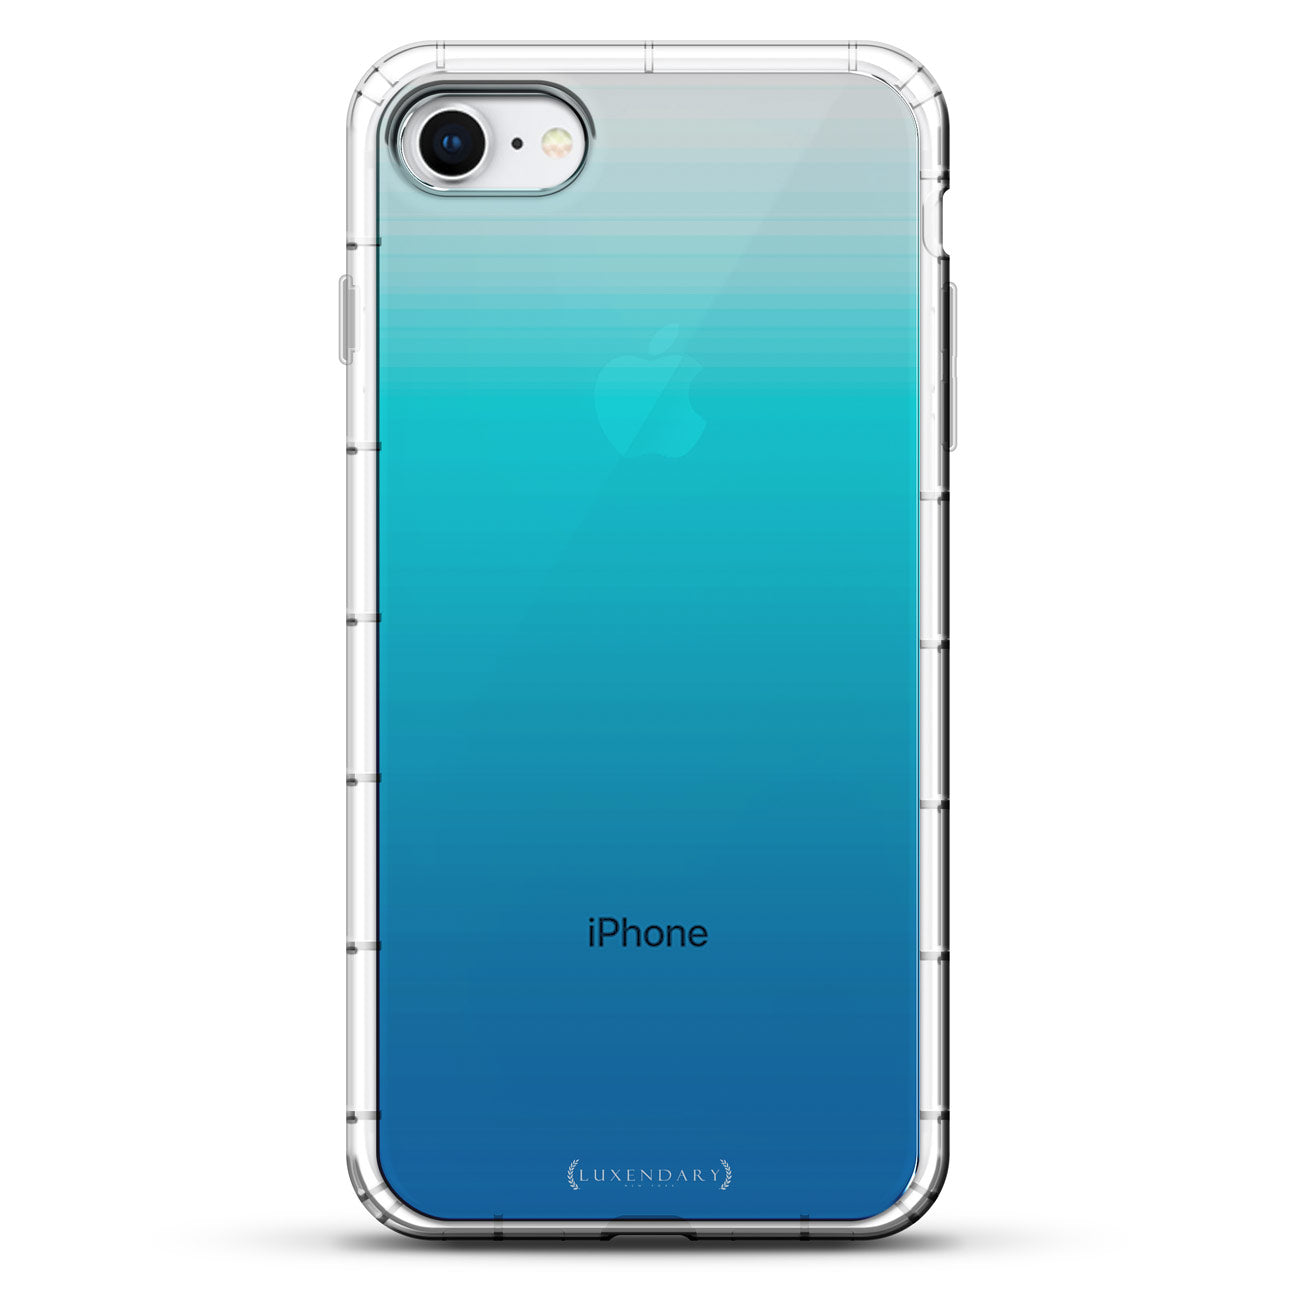 Translucent Gradient Turquois Blue